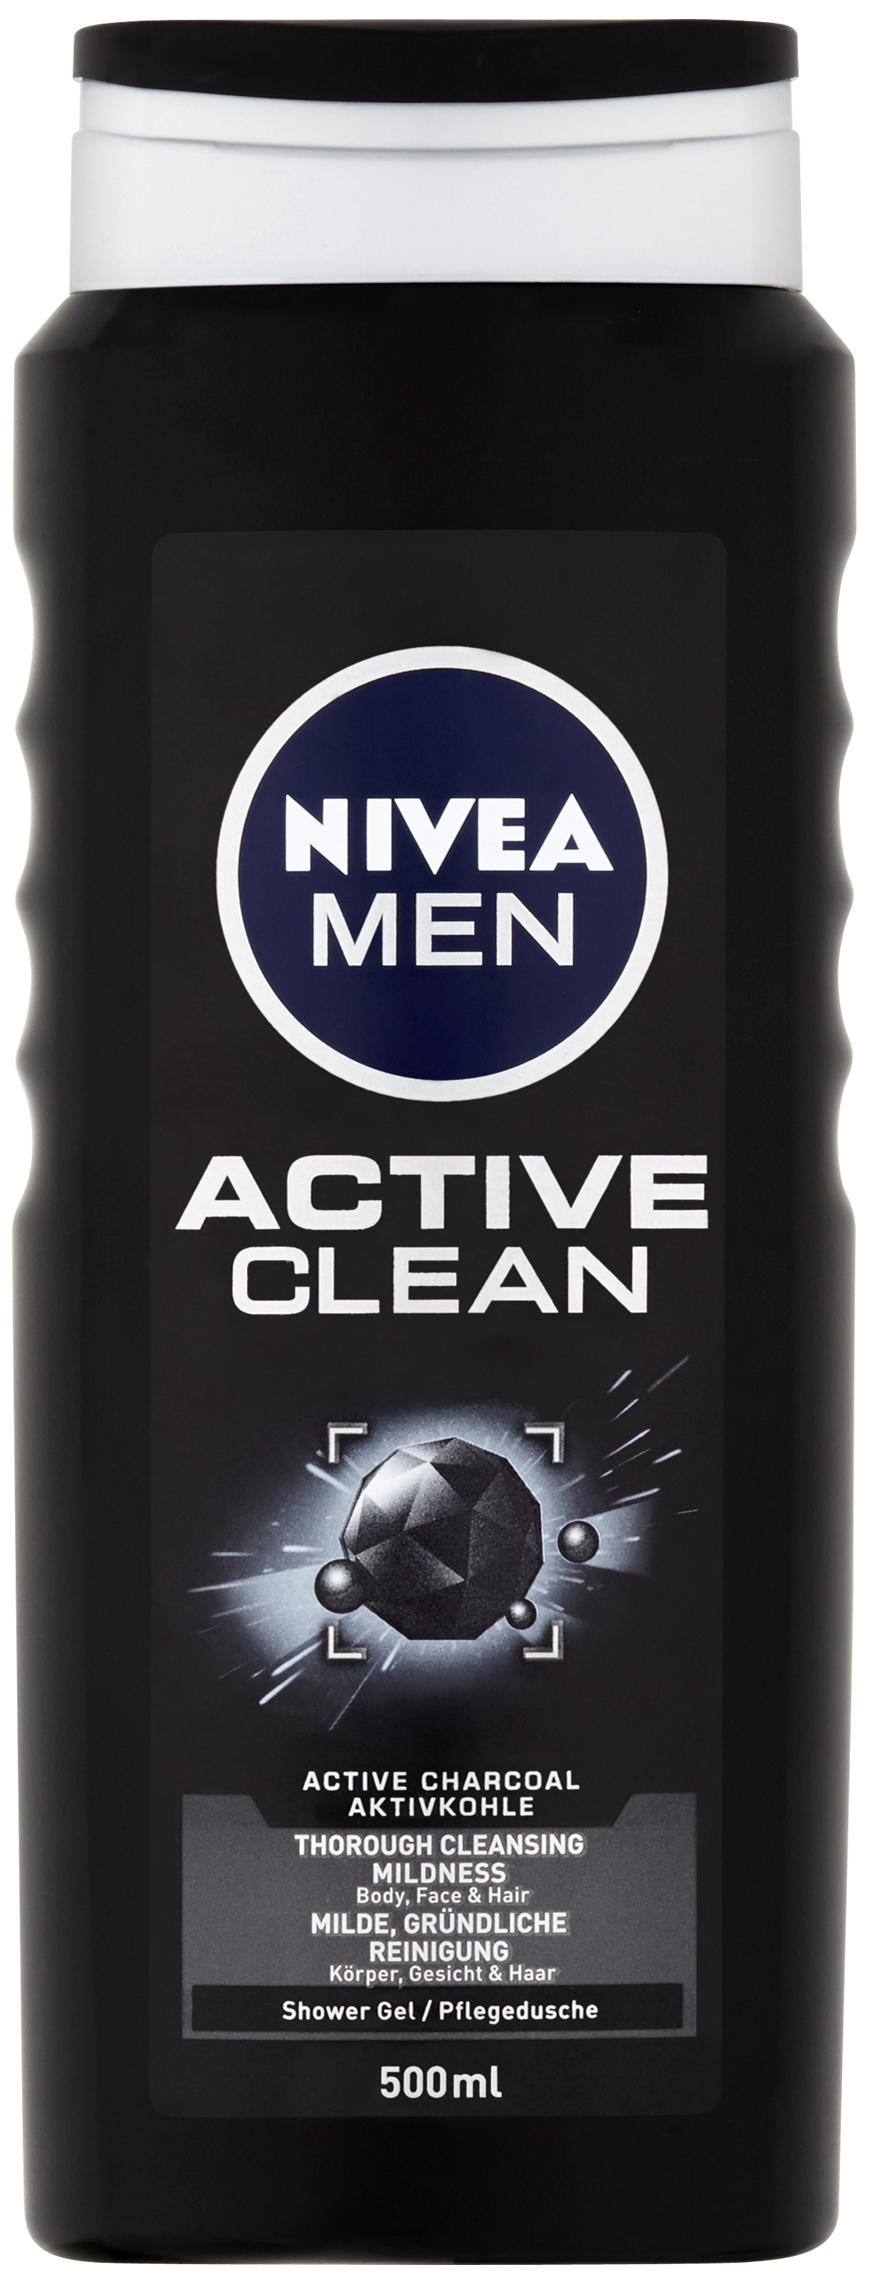 NIVEA MEN Sprchový gel Active Clean 500 ml